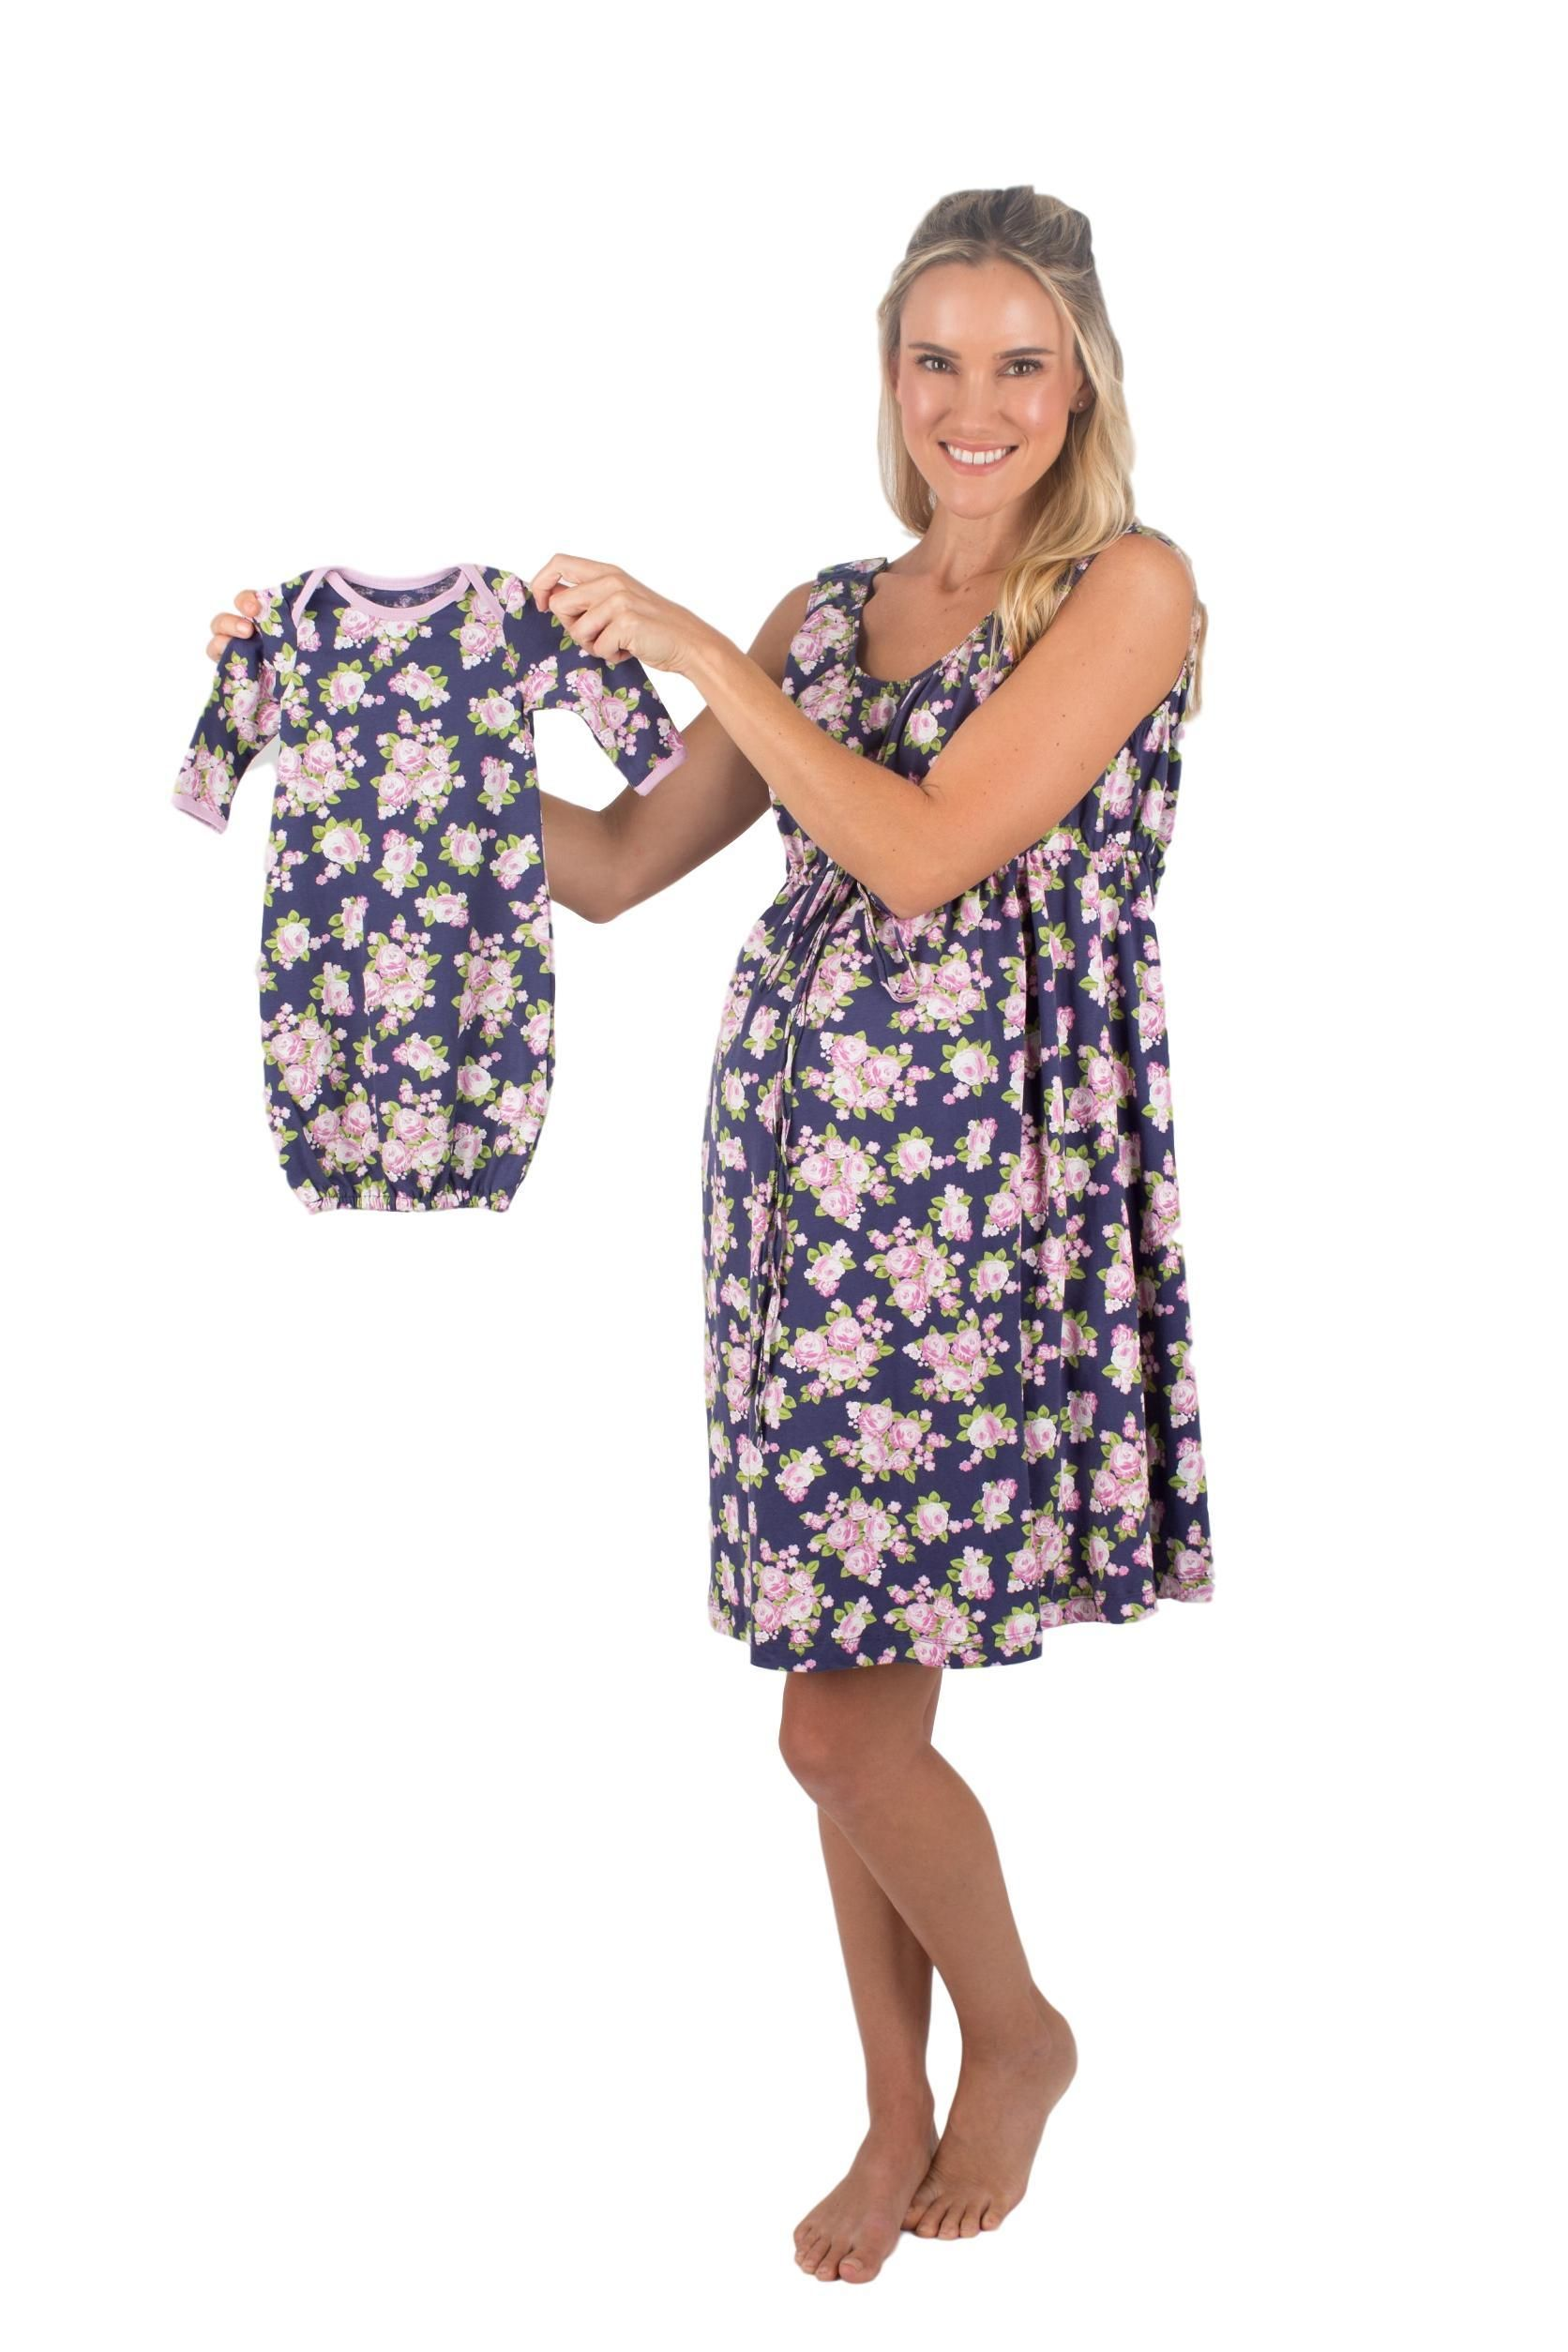 44c19e6b61e00 Alternatives to the Hospital Labor & Delivery Gown. Pretty robes and outfits  for birth. #doula #midwife #birth #pregnancy #hospita…